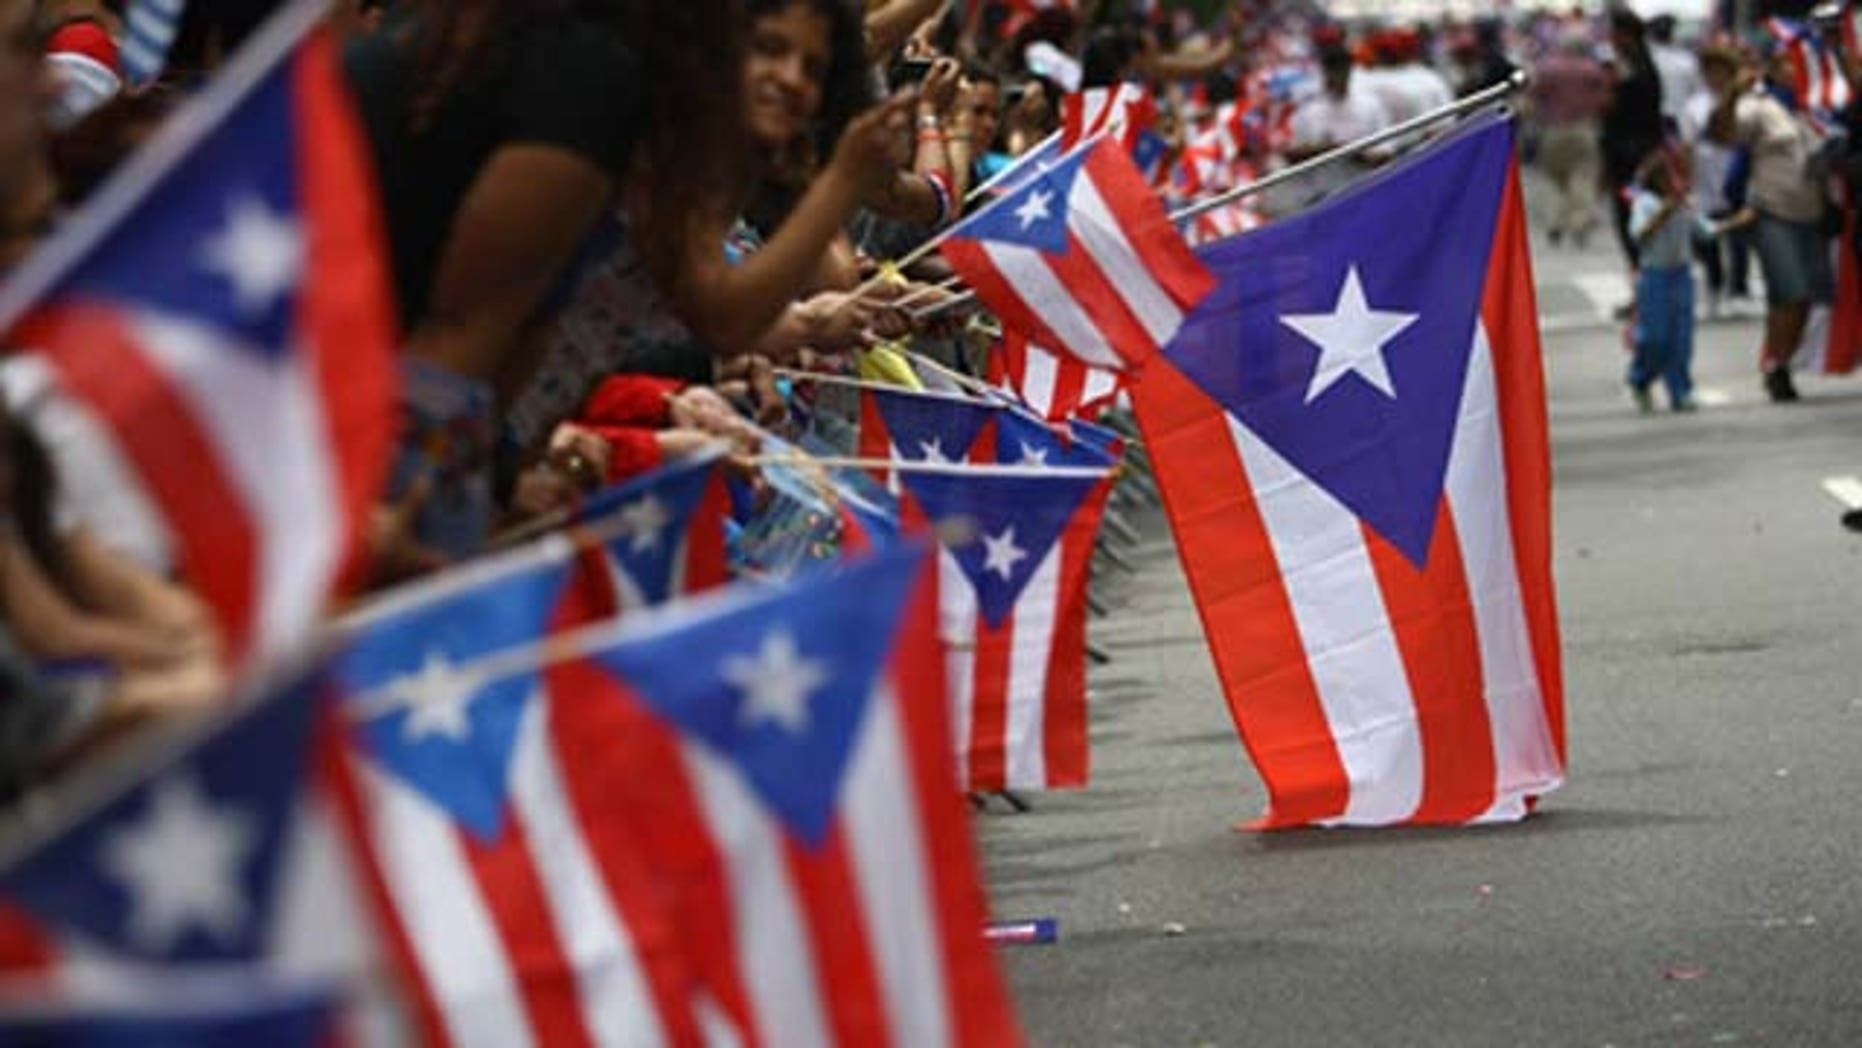 June 14, 2009: Revelers celebrate during the 2009 Puerto Rican Day Parade on the streets of Manhattan in New York City.